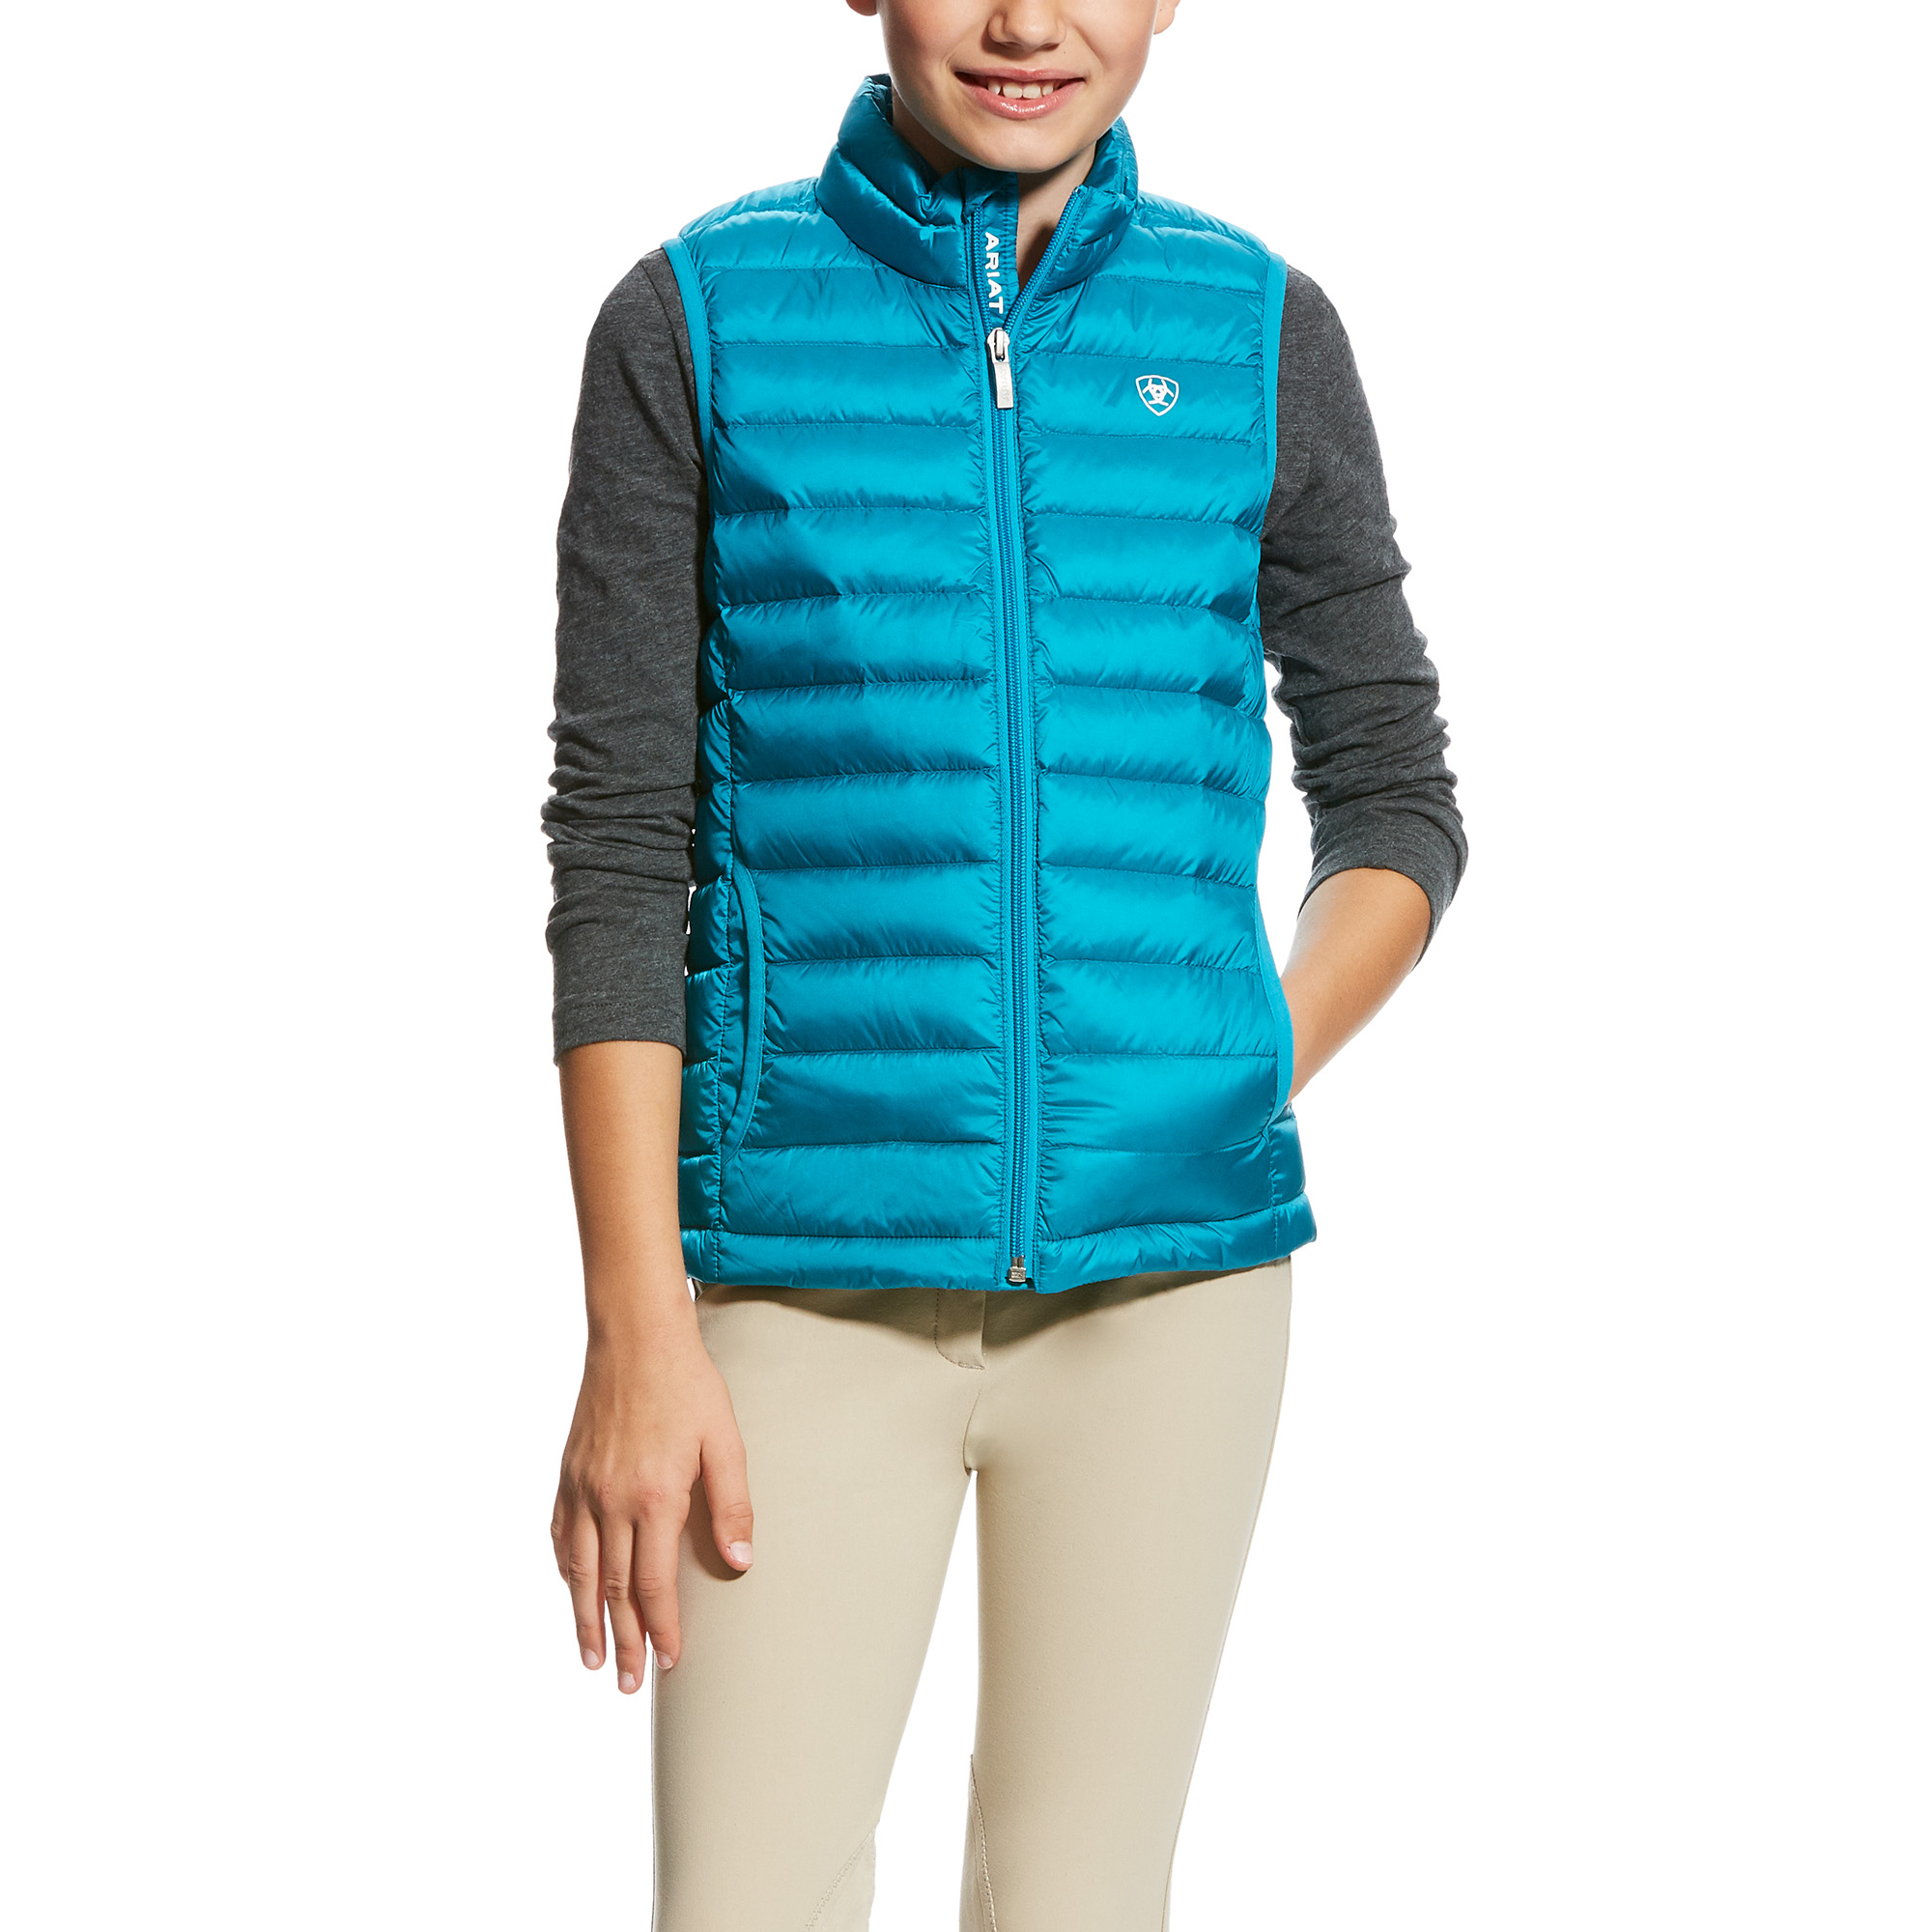 Ideal Vest for Girls from Ariat